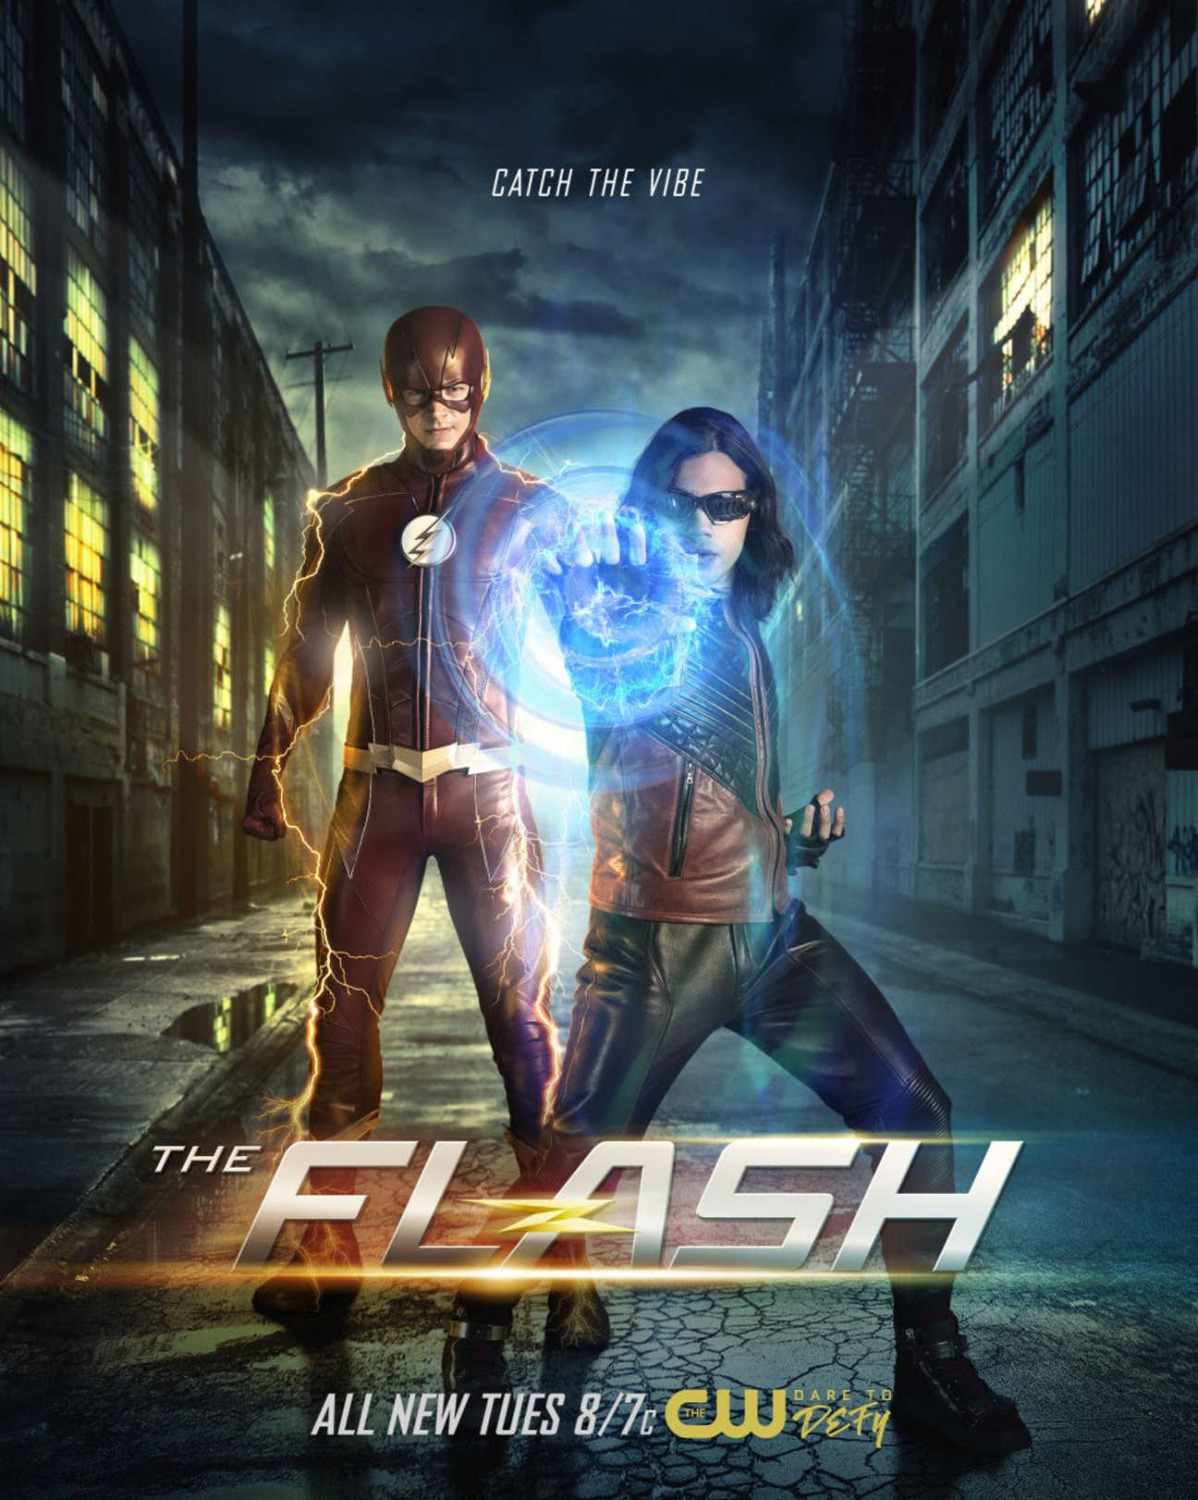 https://vignette.wikia.nocookie.net/arrow/images/d/d6/The_Flash_season_4_poster_-_Catch_the_Vibe.png/revision/latest?cb=20181130134557